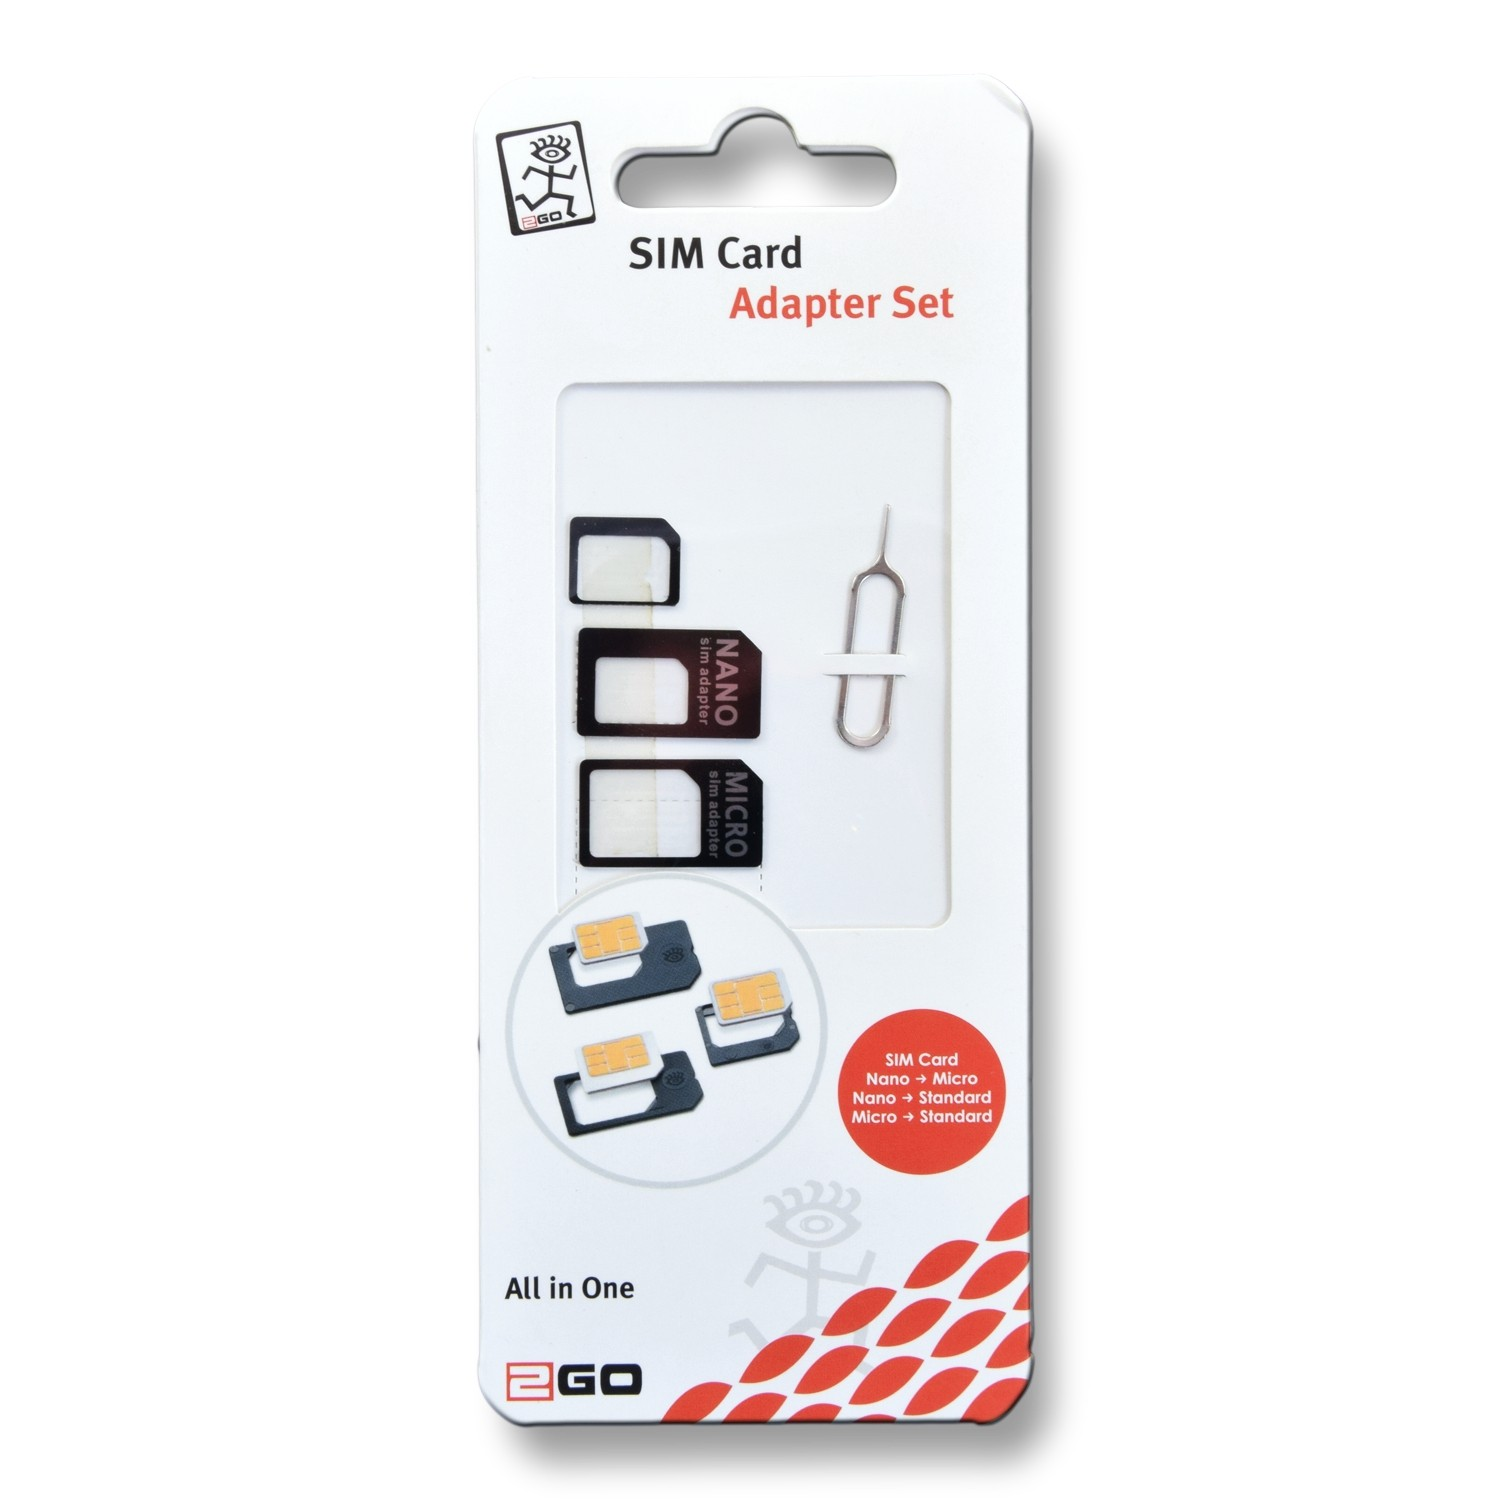 2GO SIM Card adaptor set – Bild 2